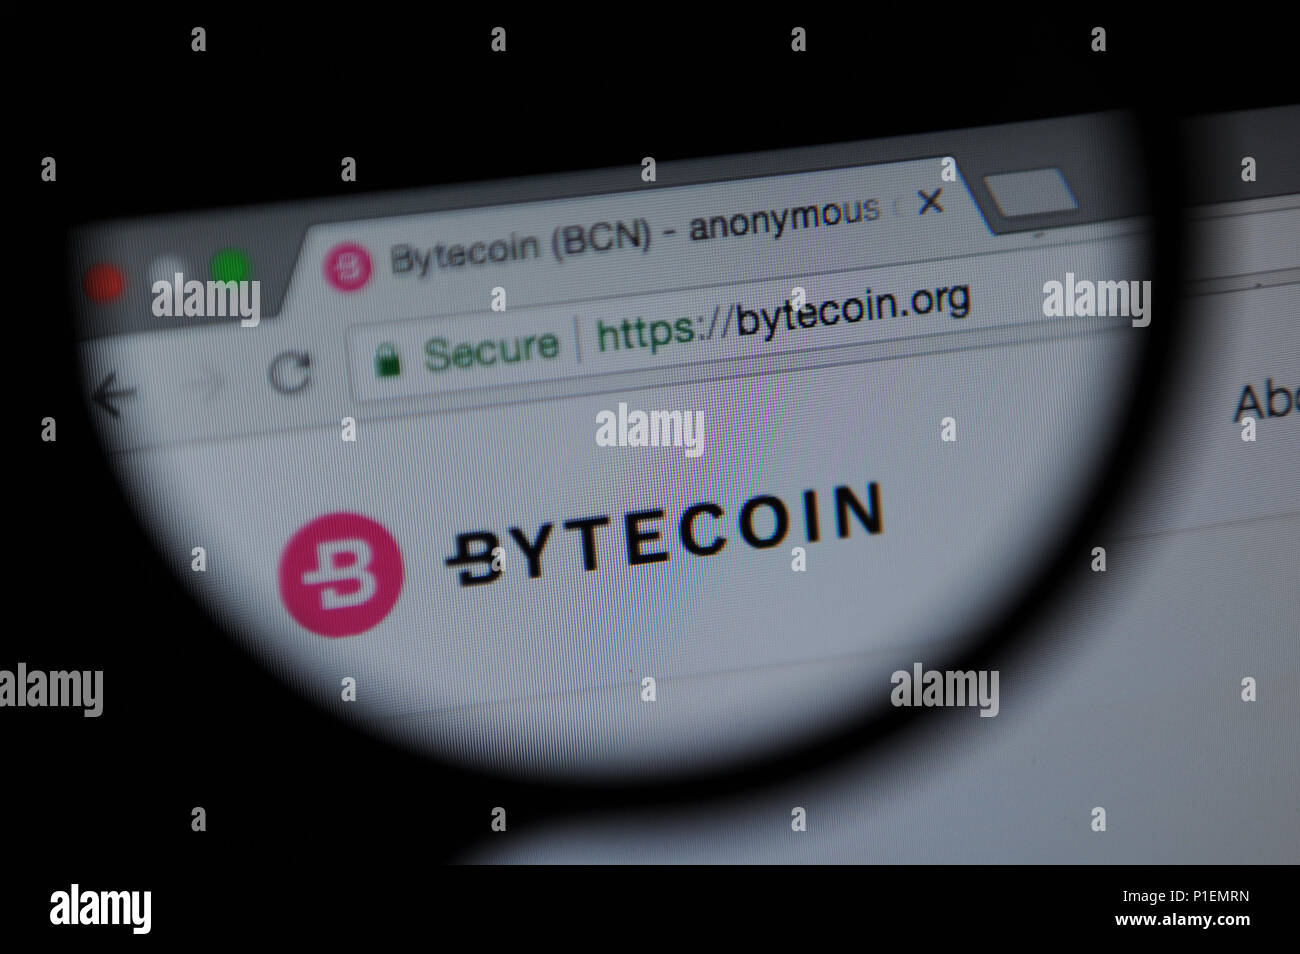 Bytecoin cryptocurrency website seen through a magnifying glass - Stock Image